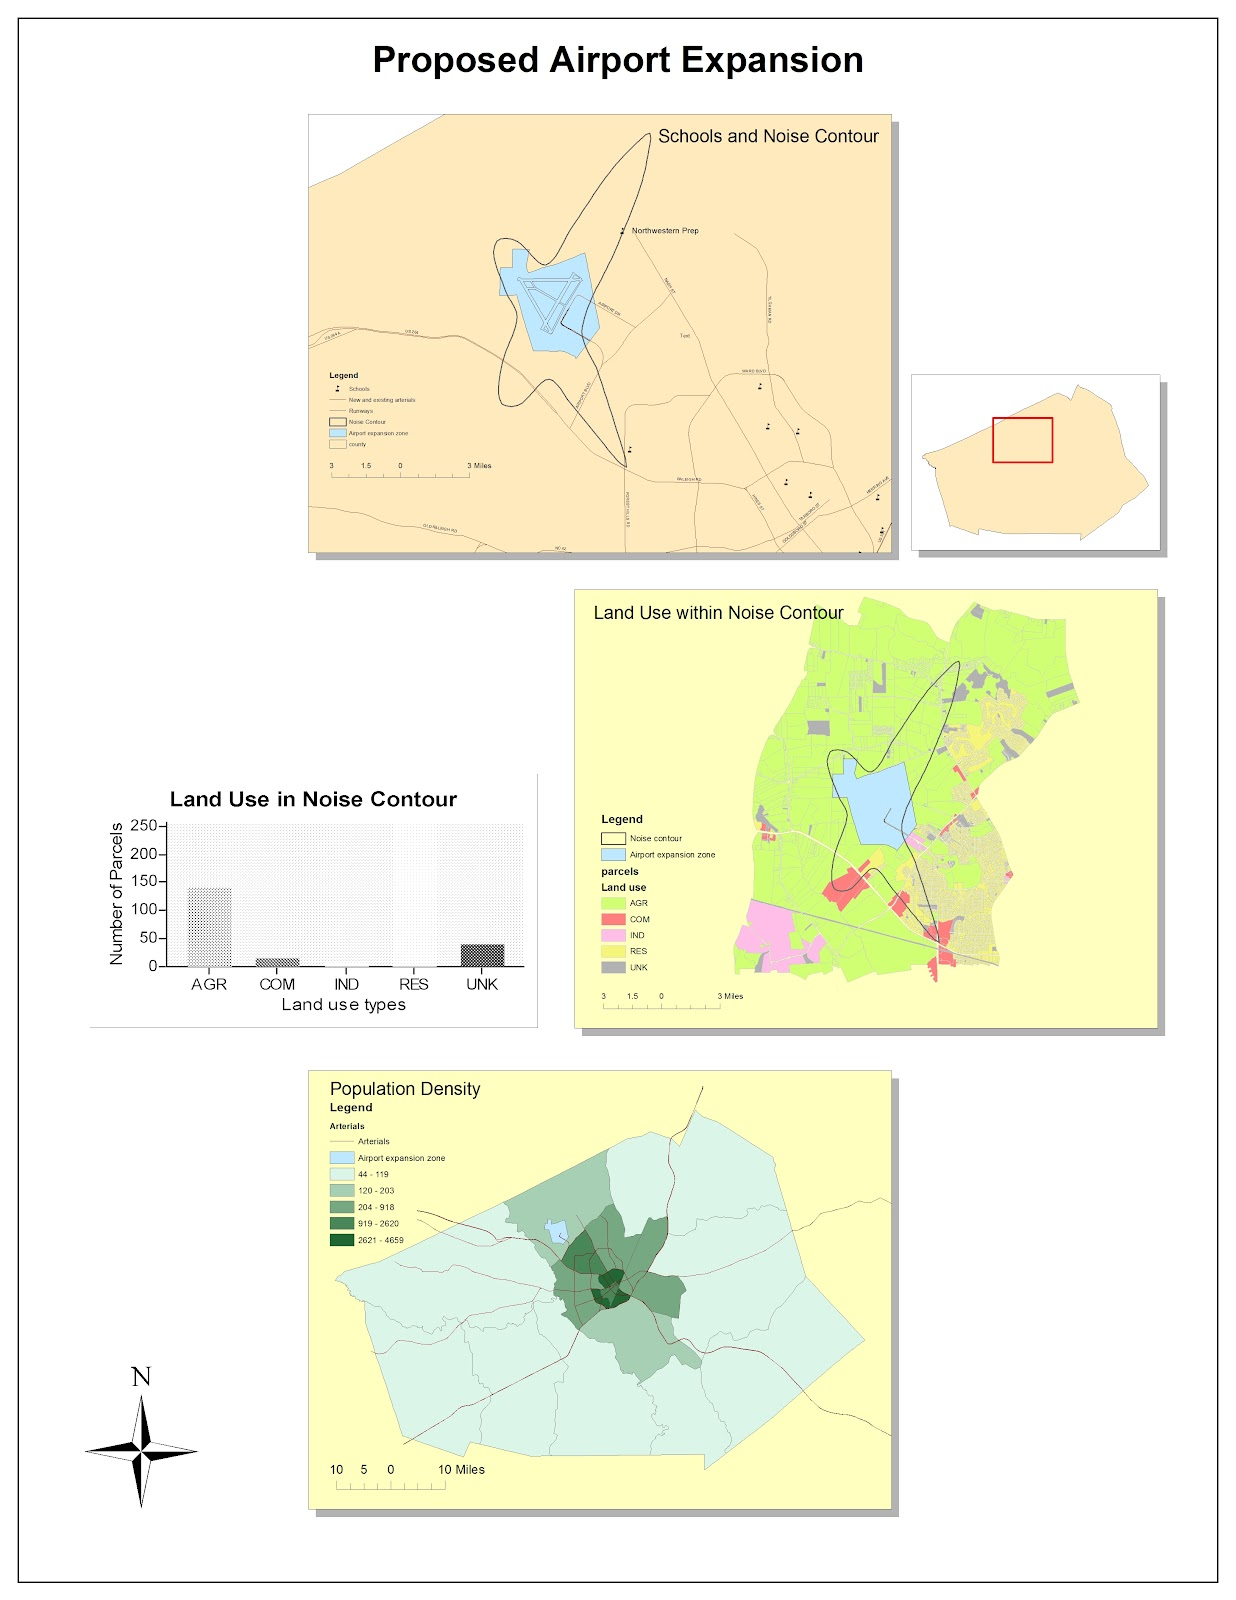 the above document lays out 3 different maps for a proposed airport expansion plan each map focuses on a different aspect of the area mapped to illustrate